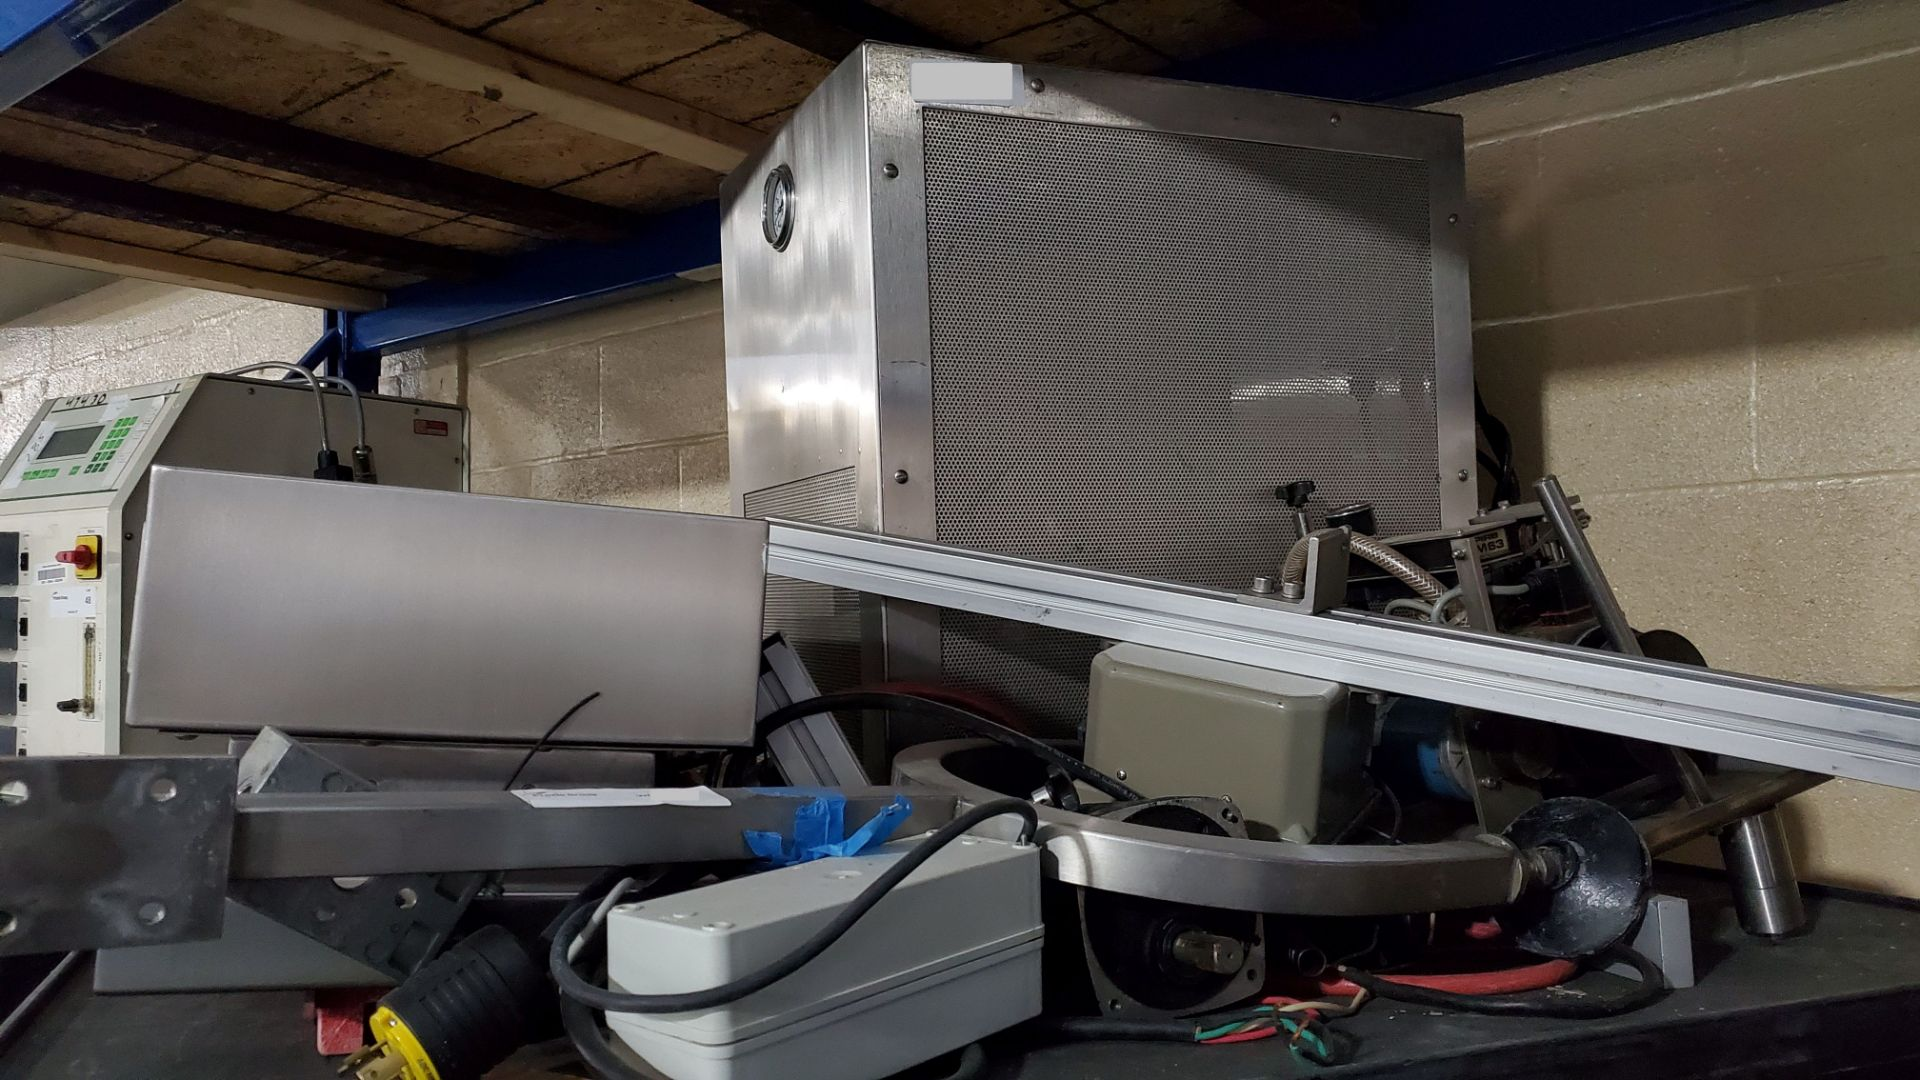 Lot 17 - Enercon COMPAK Induction Sealer, with water system.